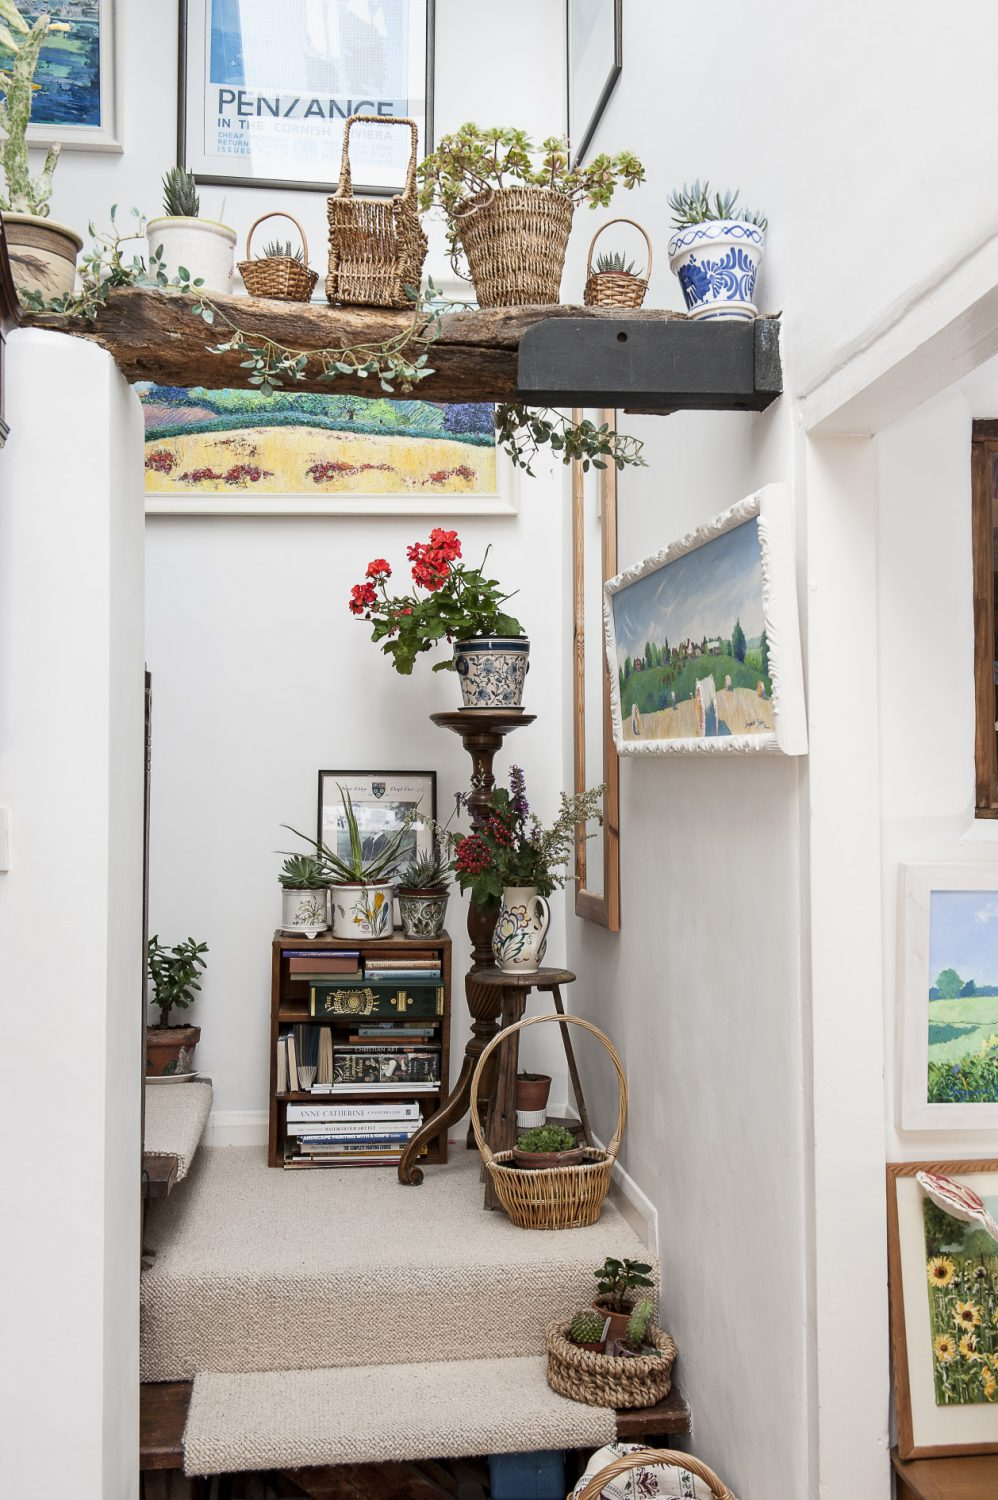 Suzanne has lined one of two staircases with baskets of succulents, cacti and geraniums